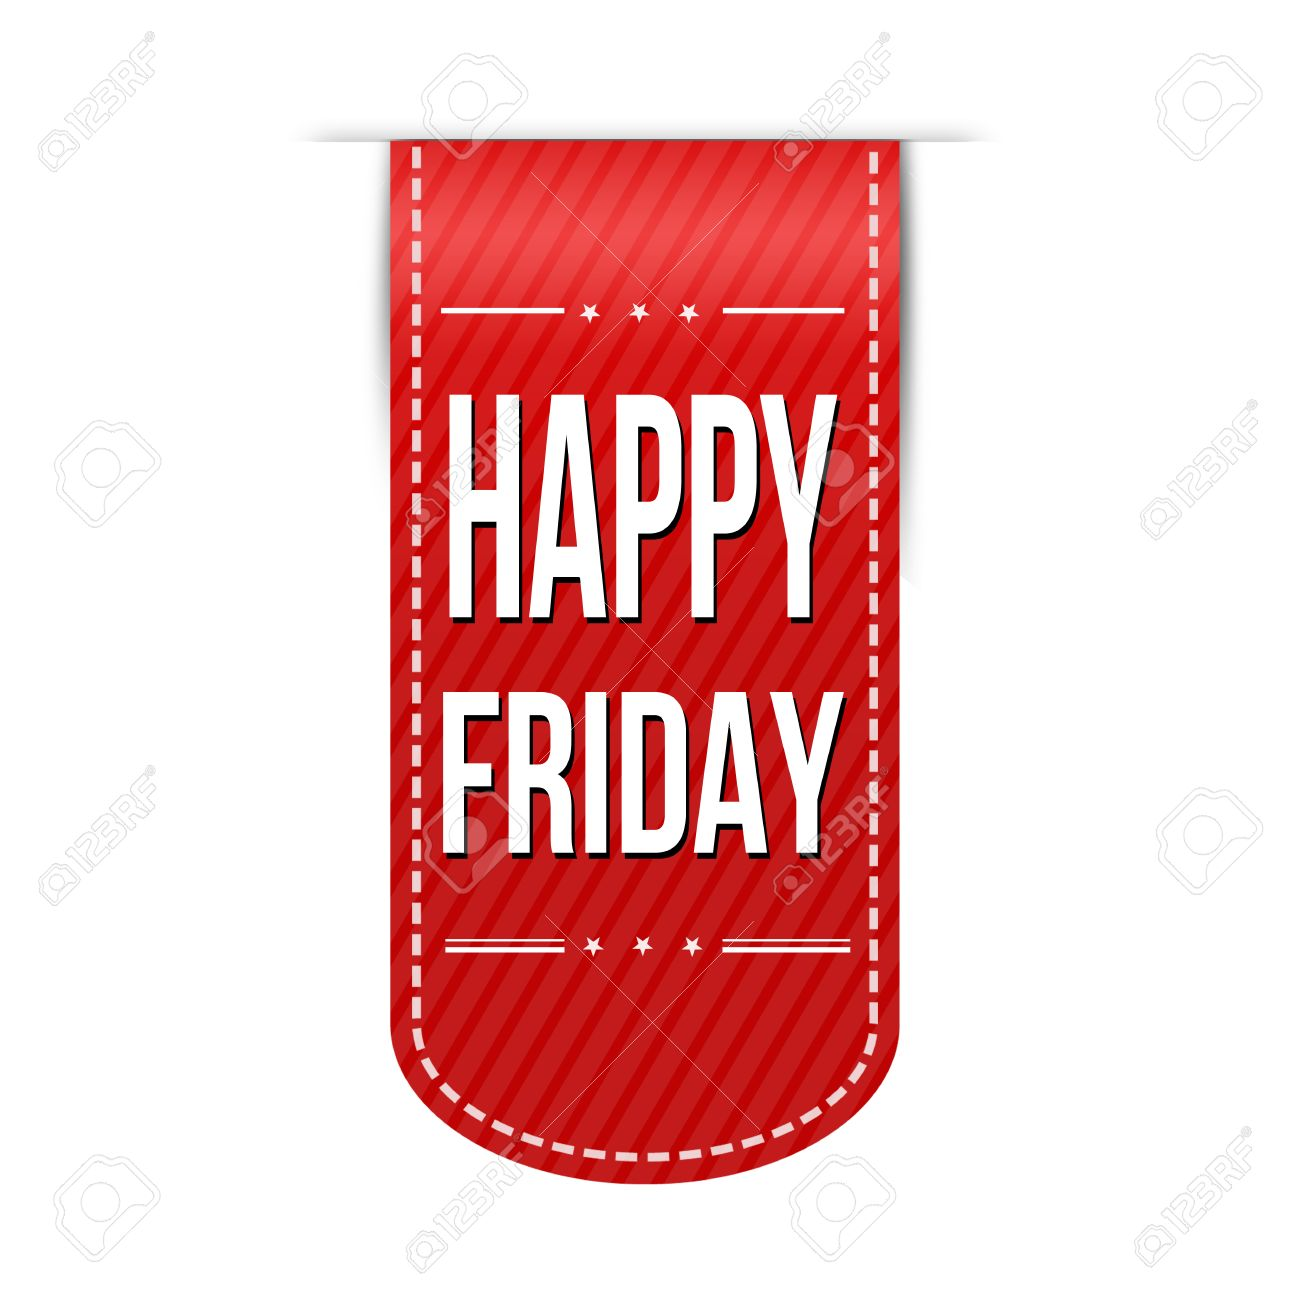 Happy Friday Banner Design Over A White Background Vector